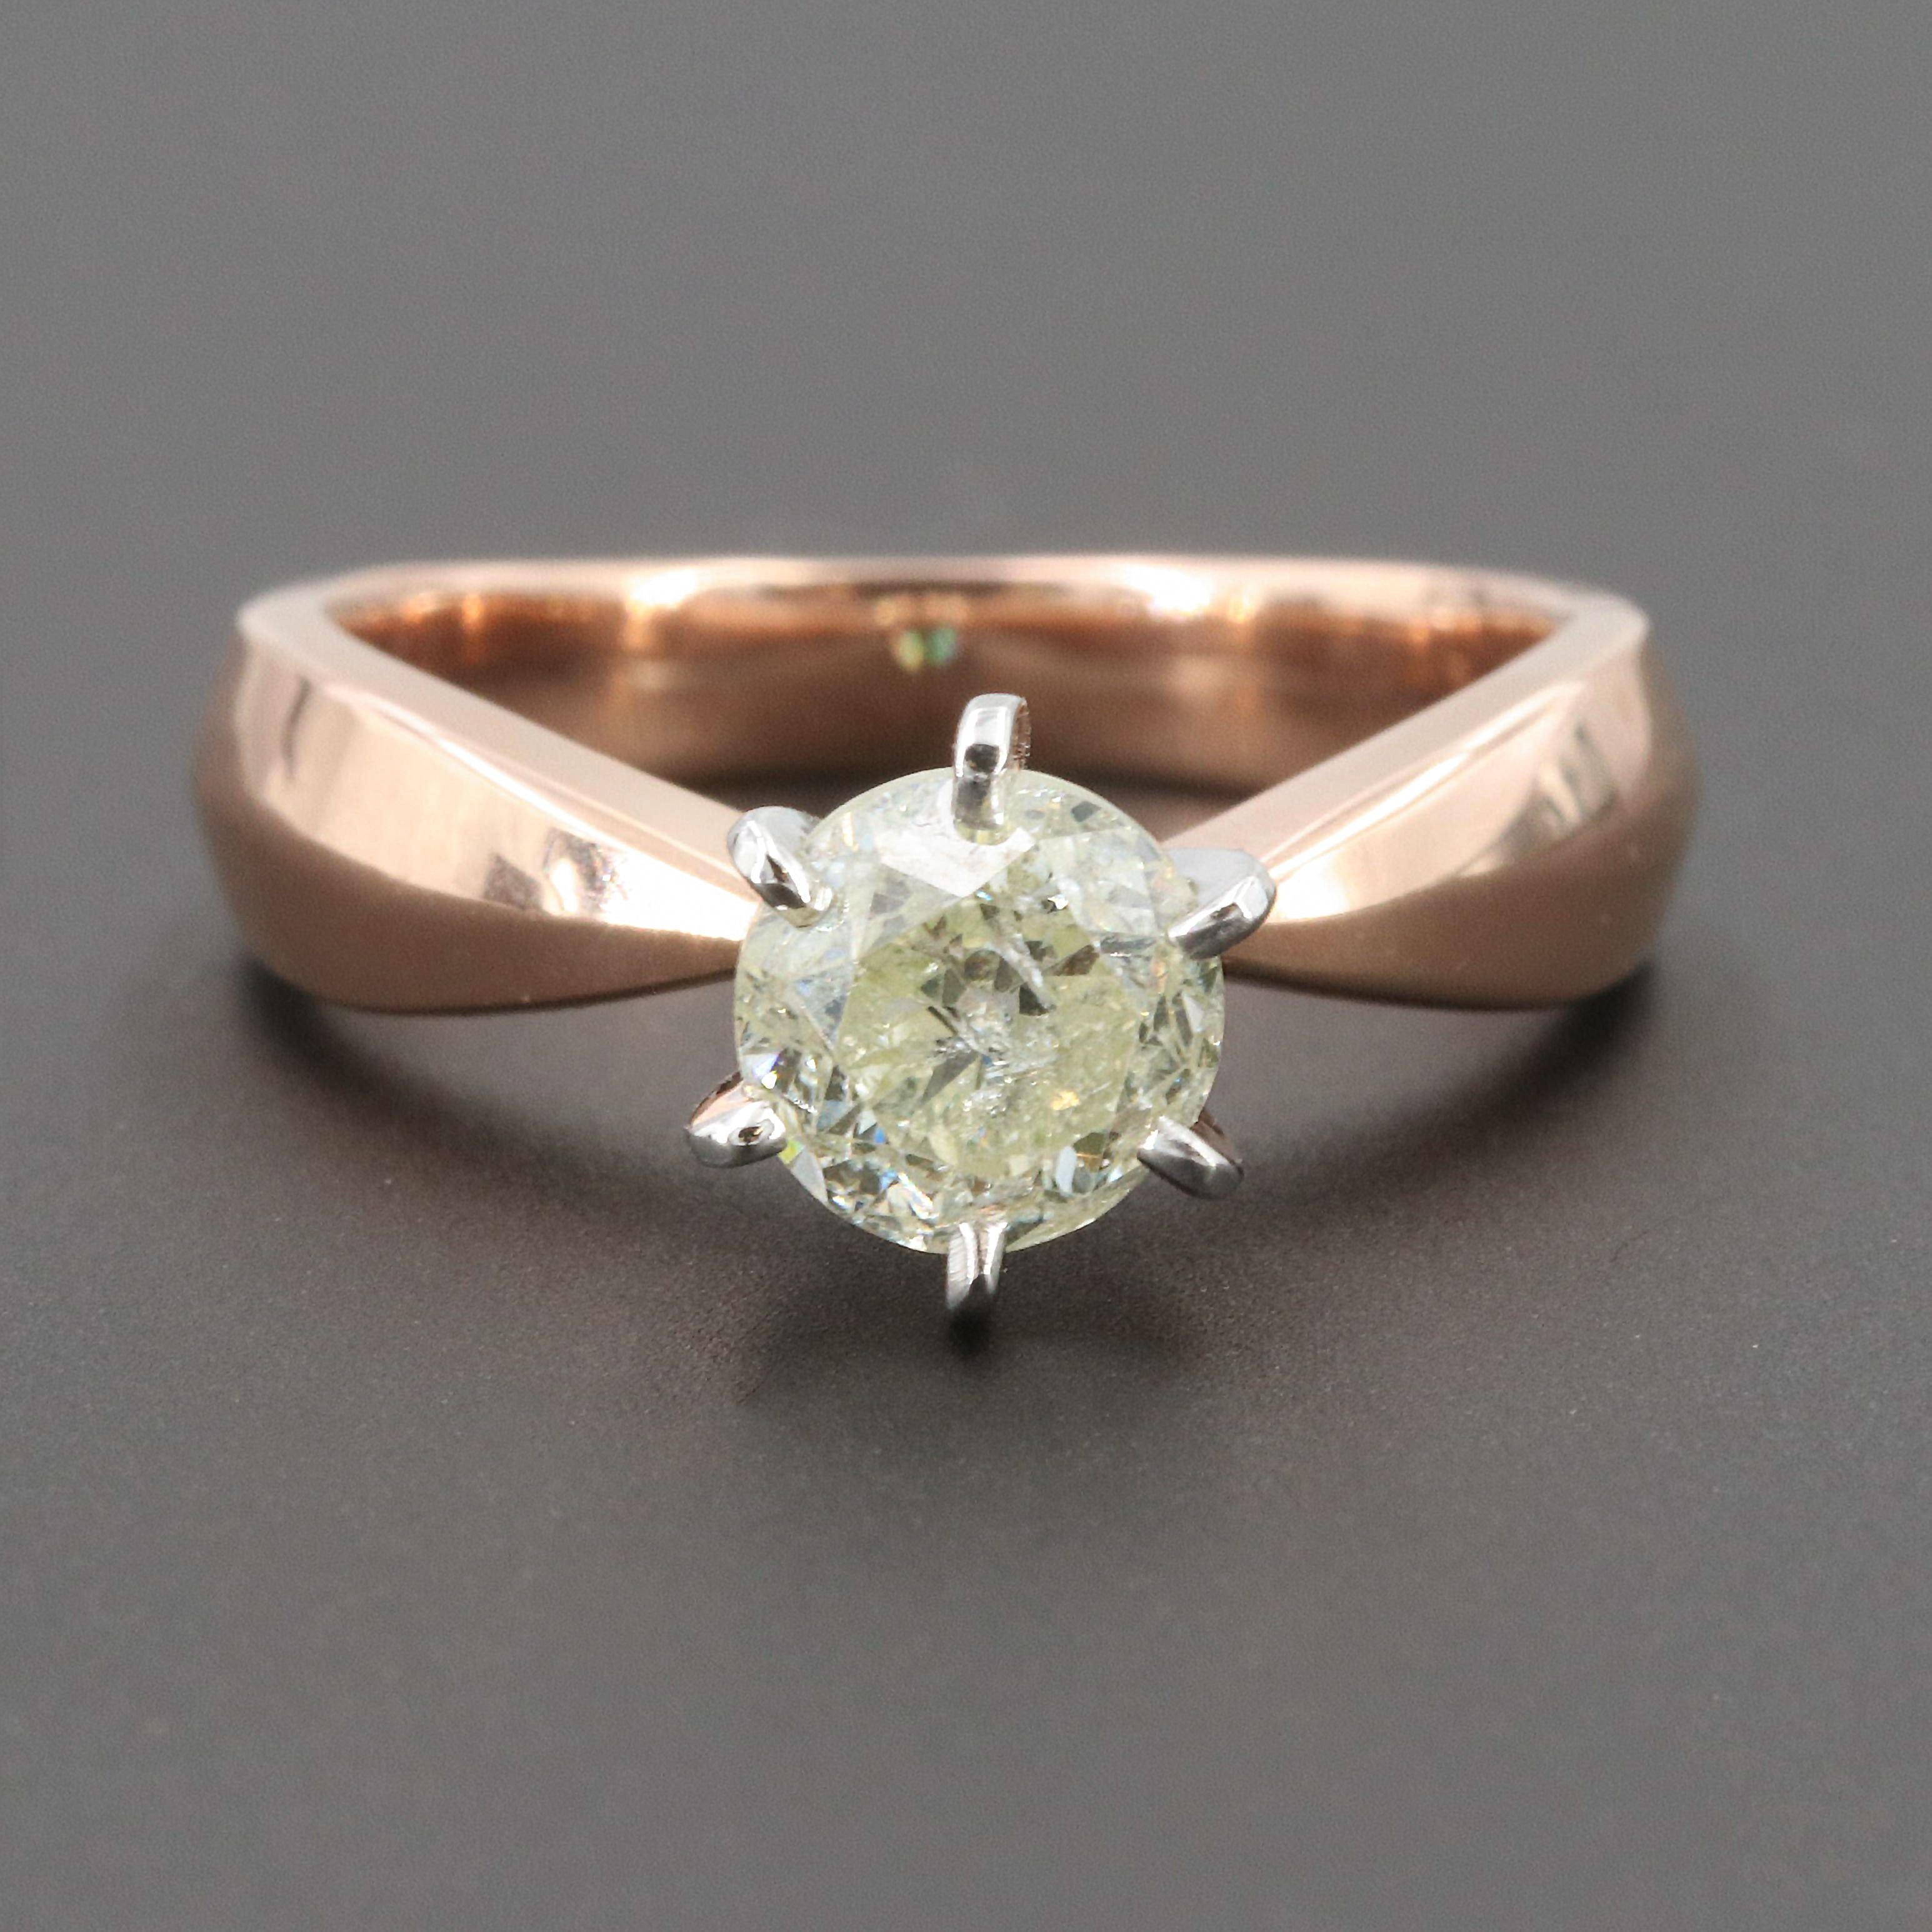 14K Rose and White Gold Diamond Ring with Tapered Knife Edge Shank